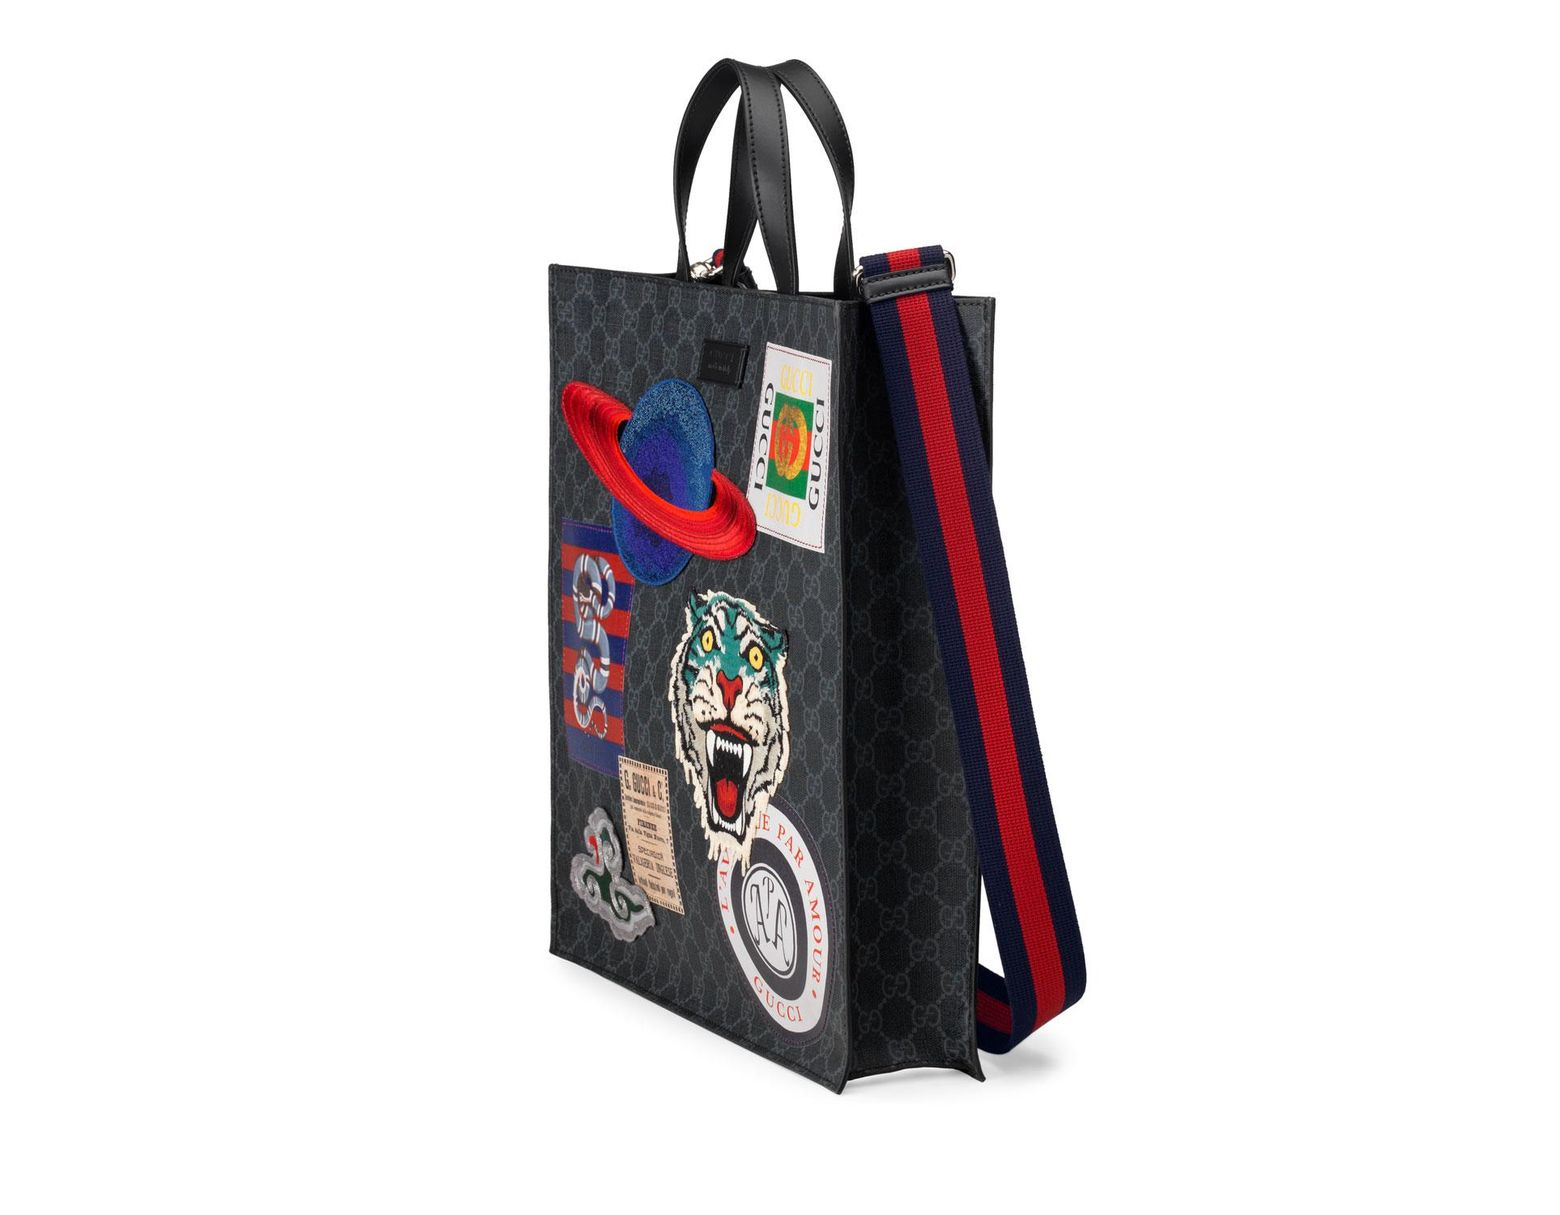 1ff899dc8b1 Lyst - Gucci Men s GG Supreme Tote Bag With Patches in Black